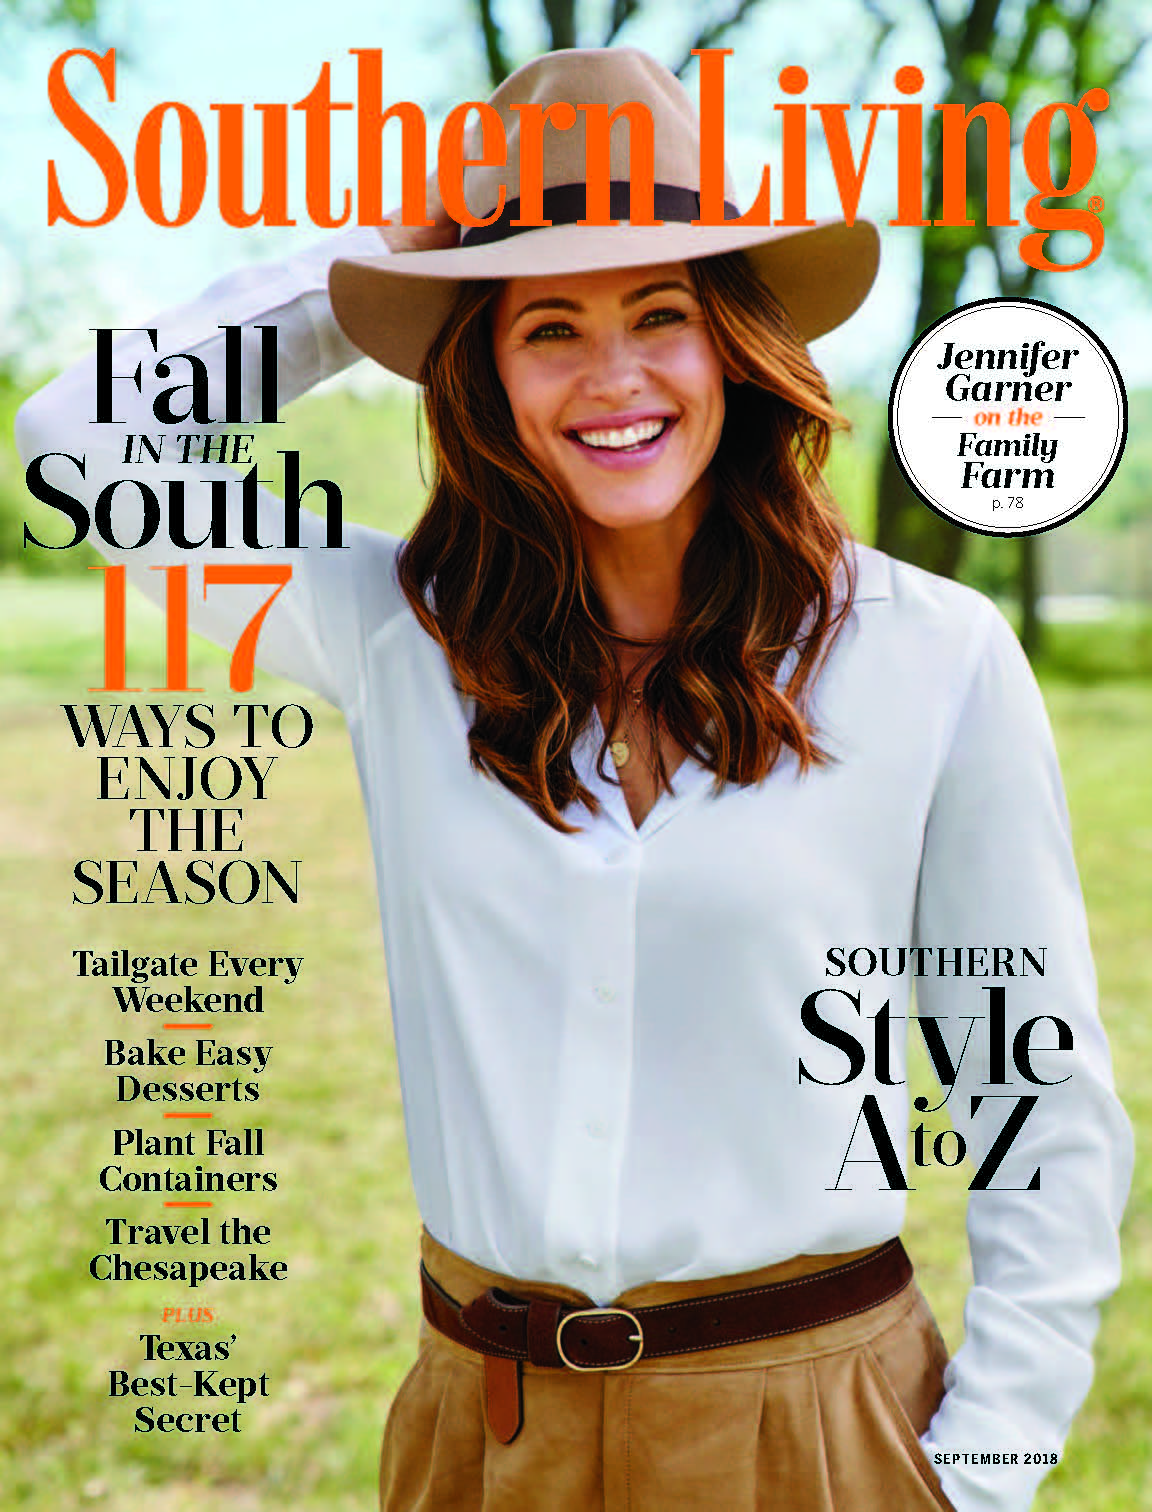 Southern_Living_1018432_20180901_Page_1.jpg